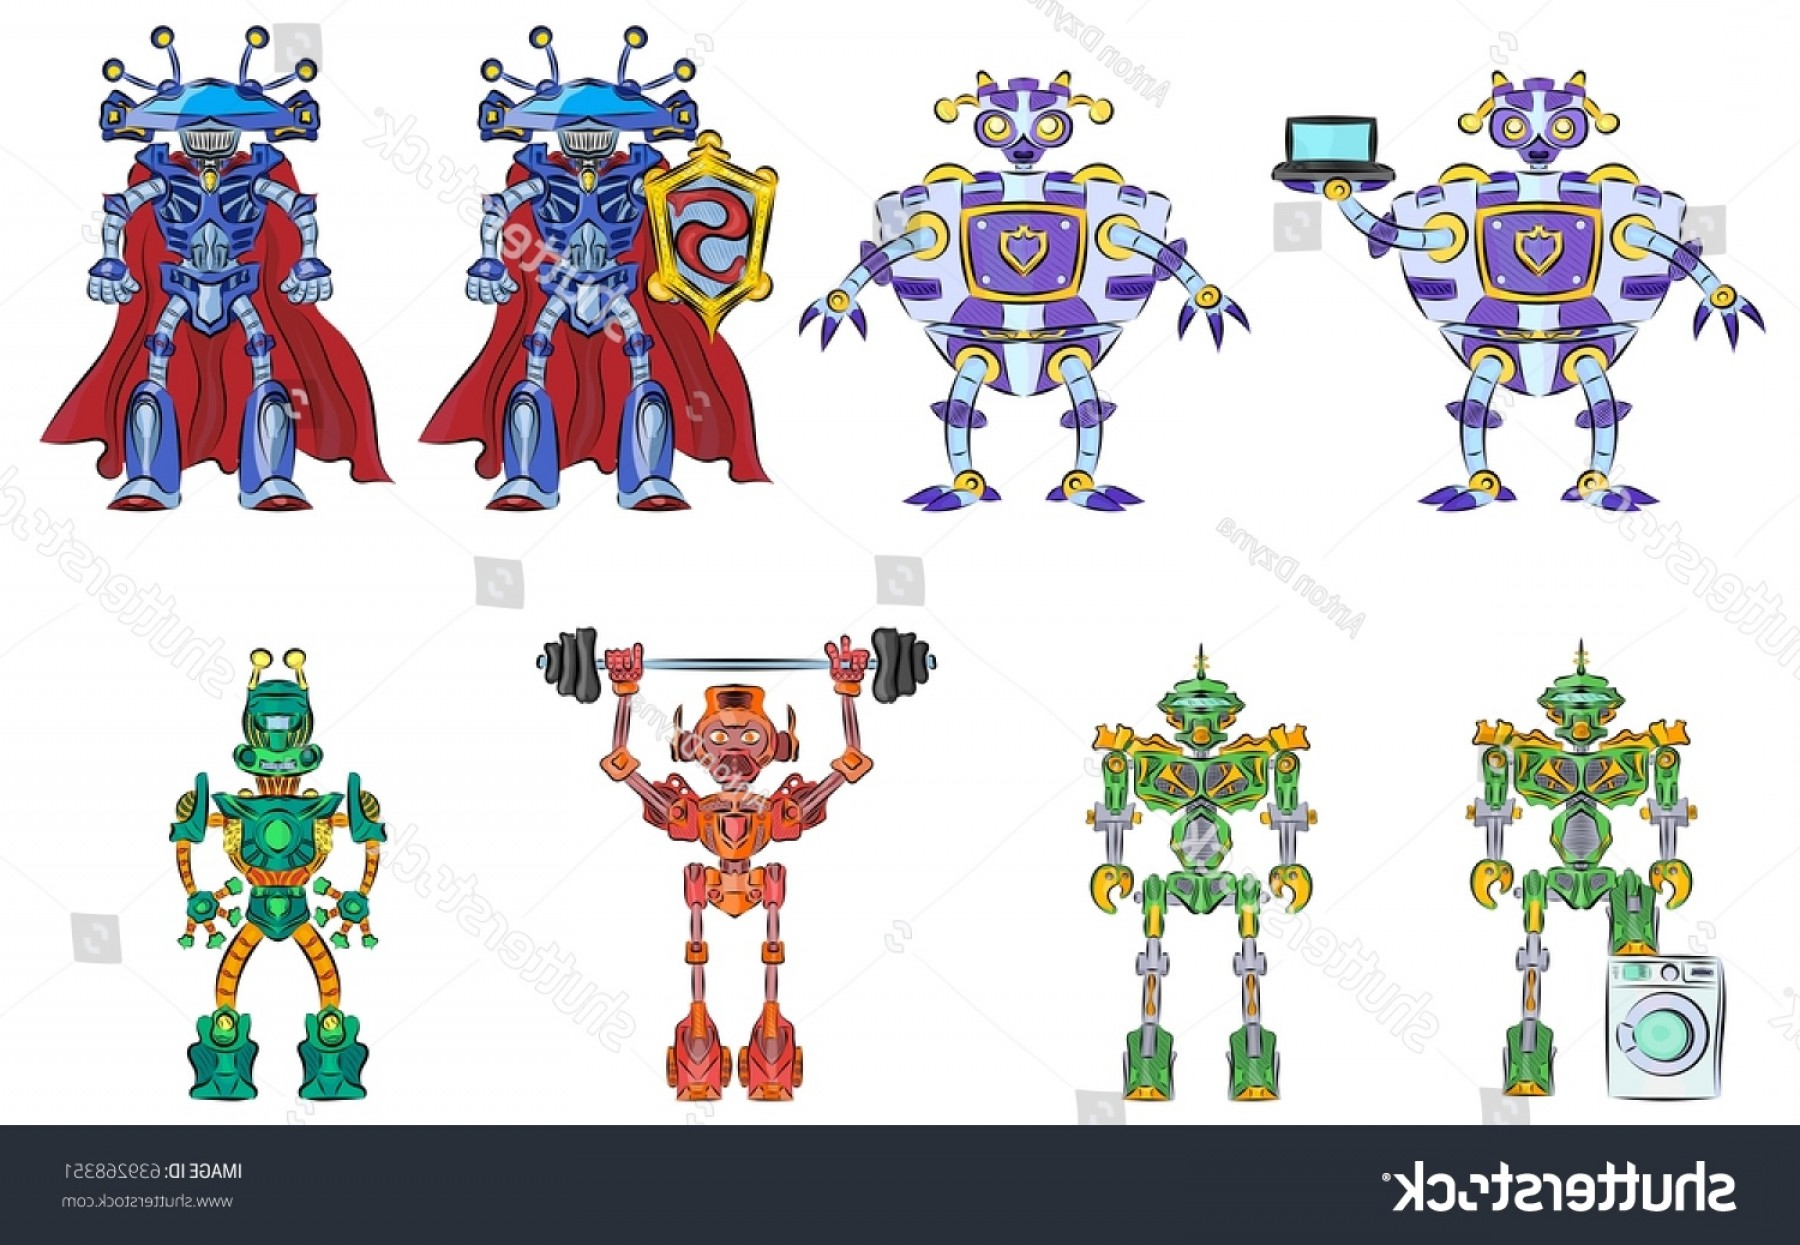 Transformers Vector Art: Robots Androids Transformers Selection Multicolored Machines